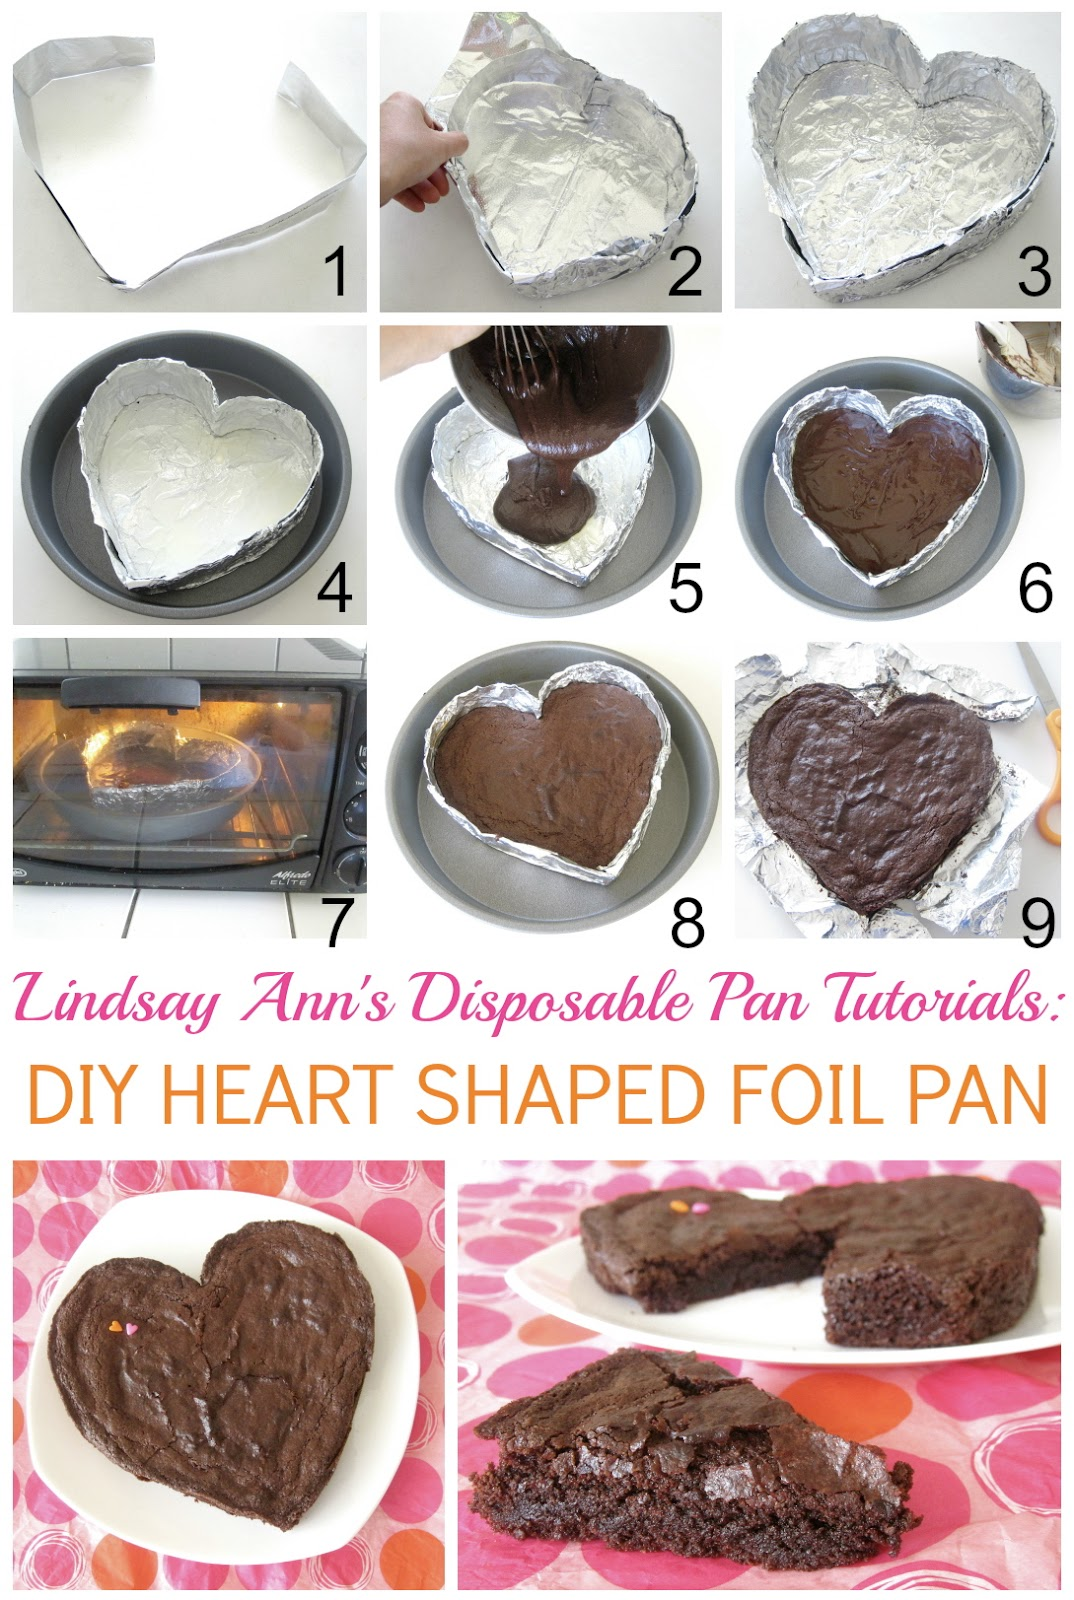 Fudgy Heart Shaped Brownie With A Diy Disposable Heart